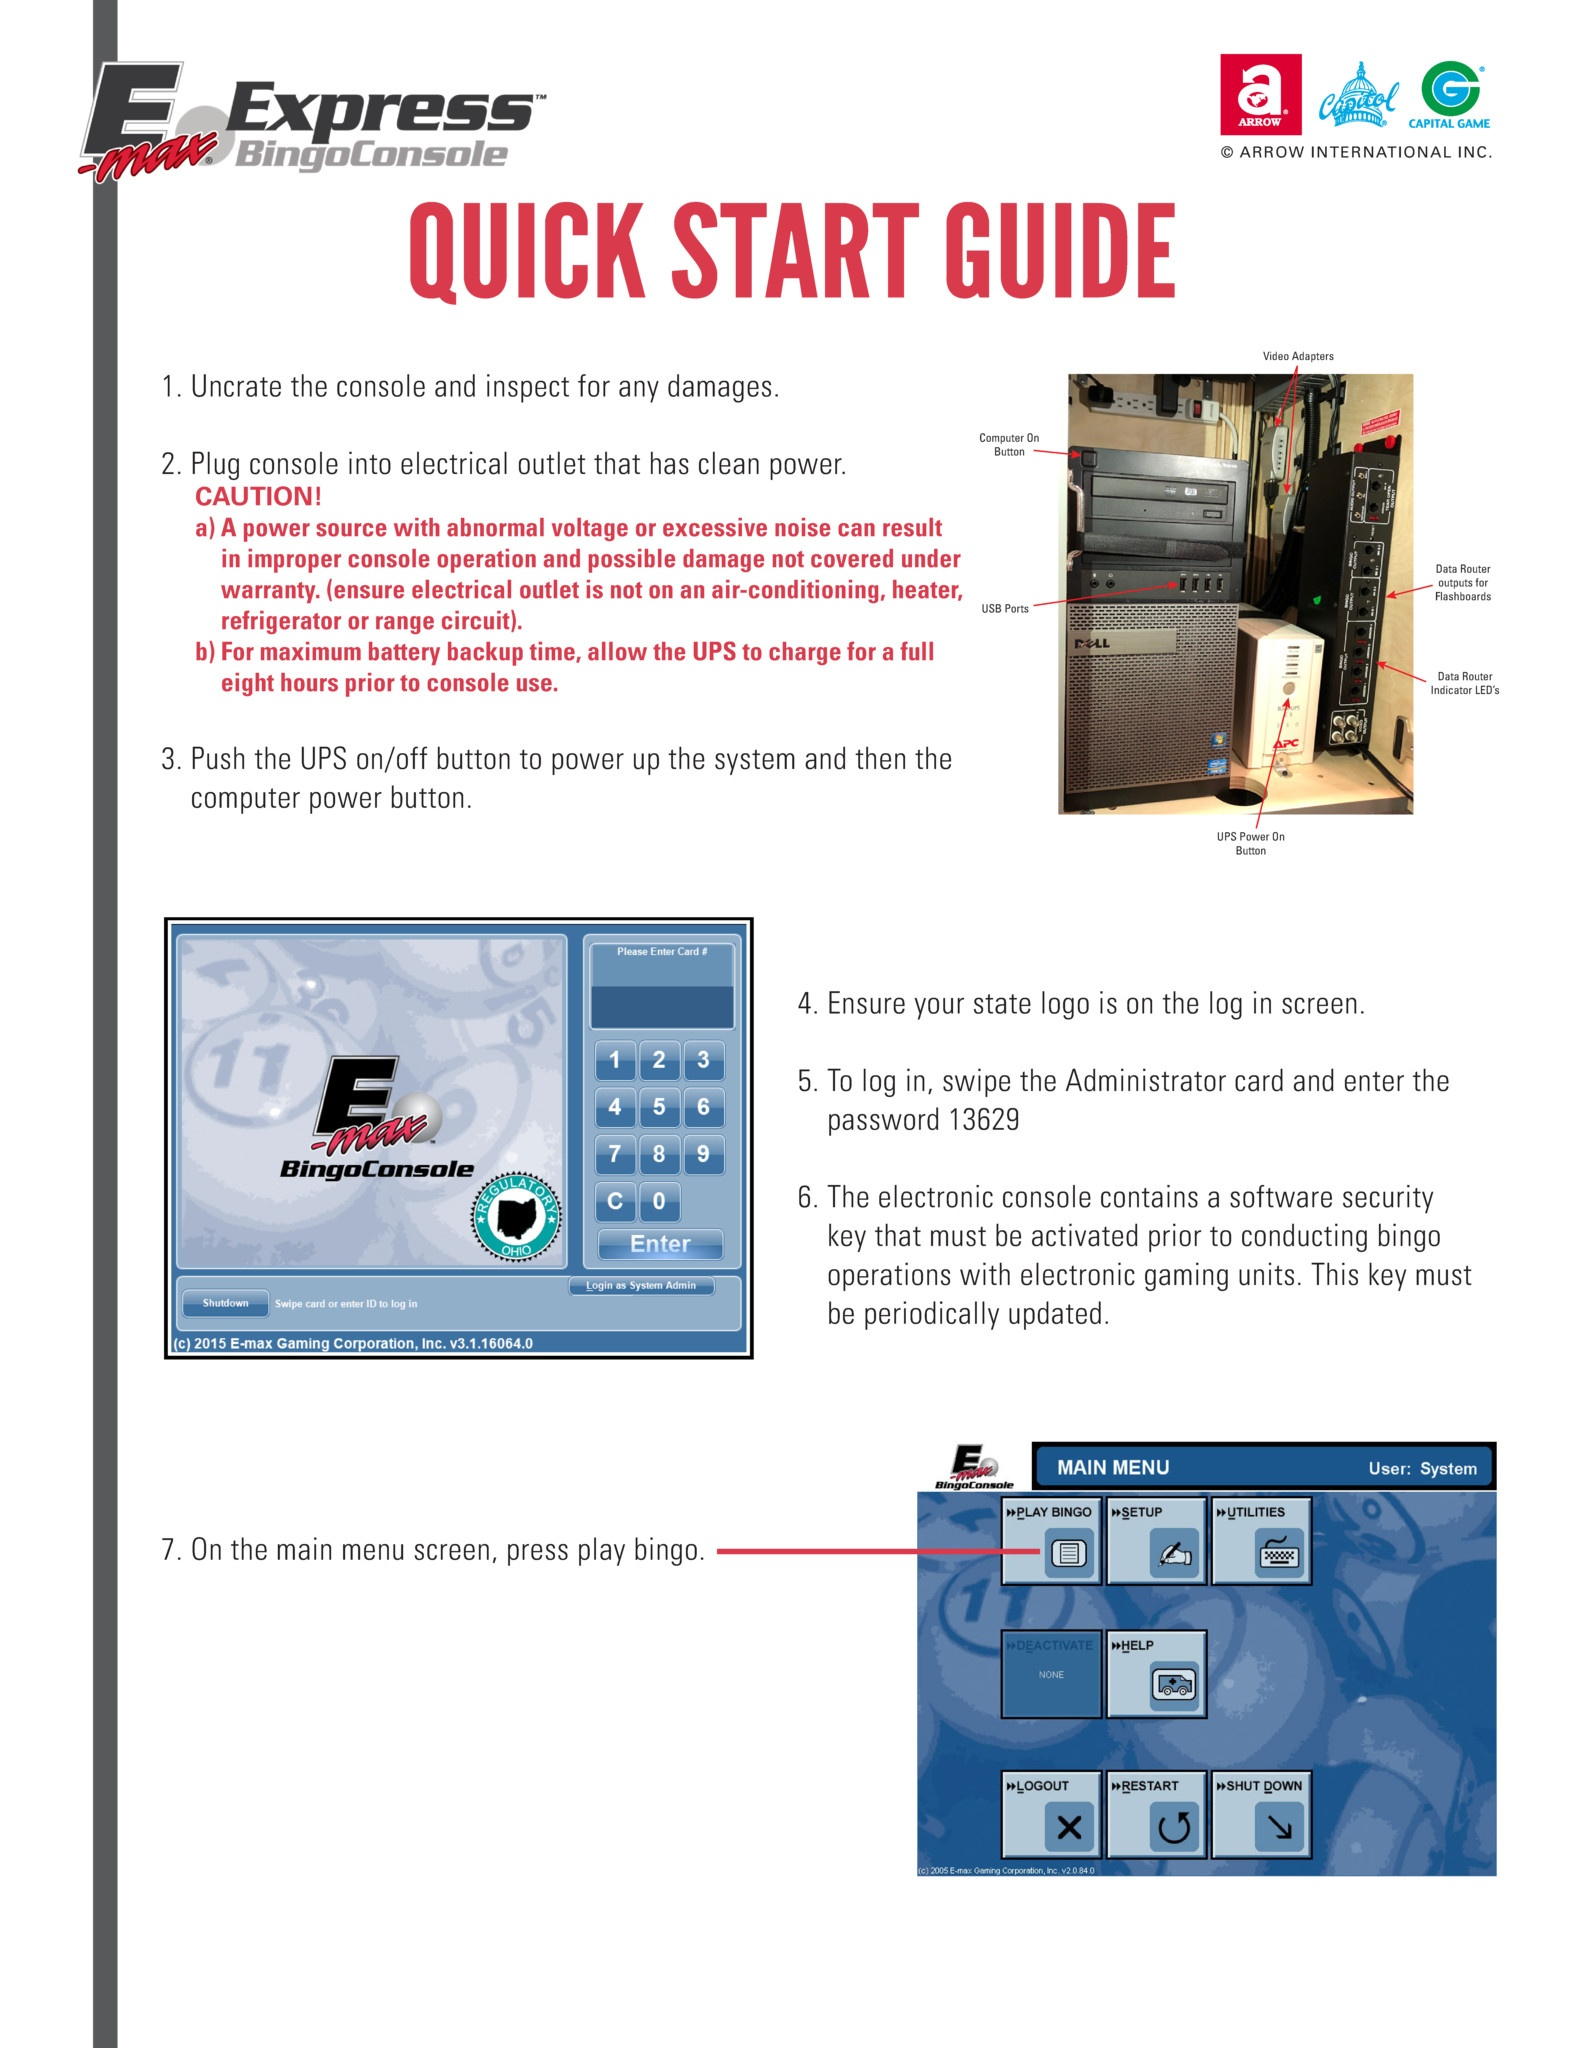 E-max Express Quick Start Guide  Equipment Manuals/Quick Start Guides